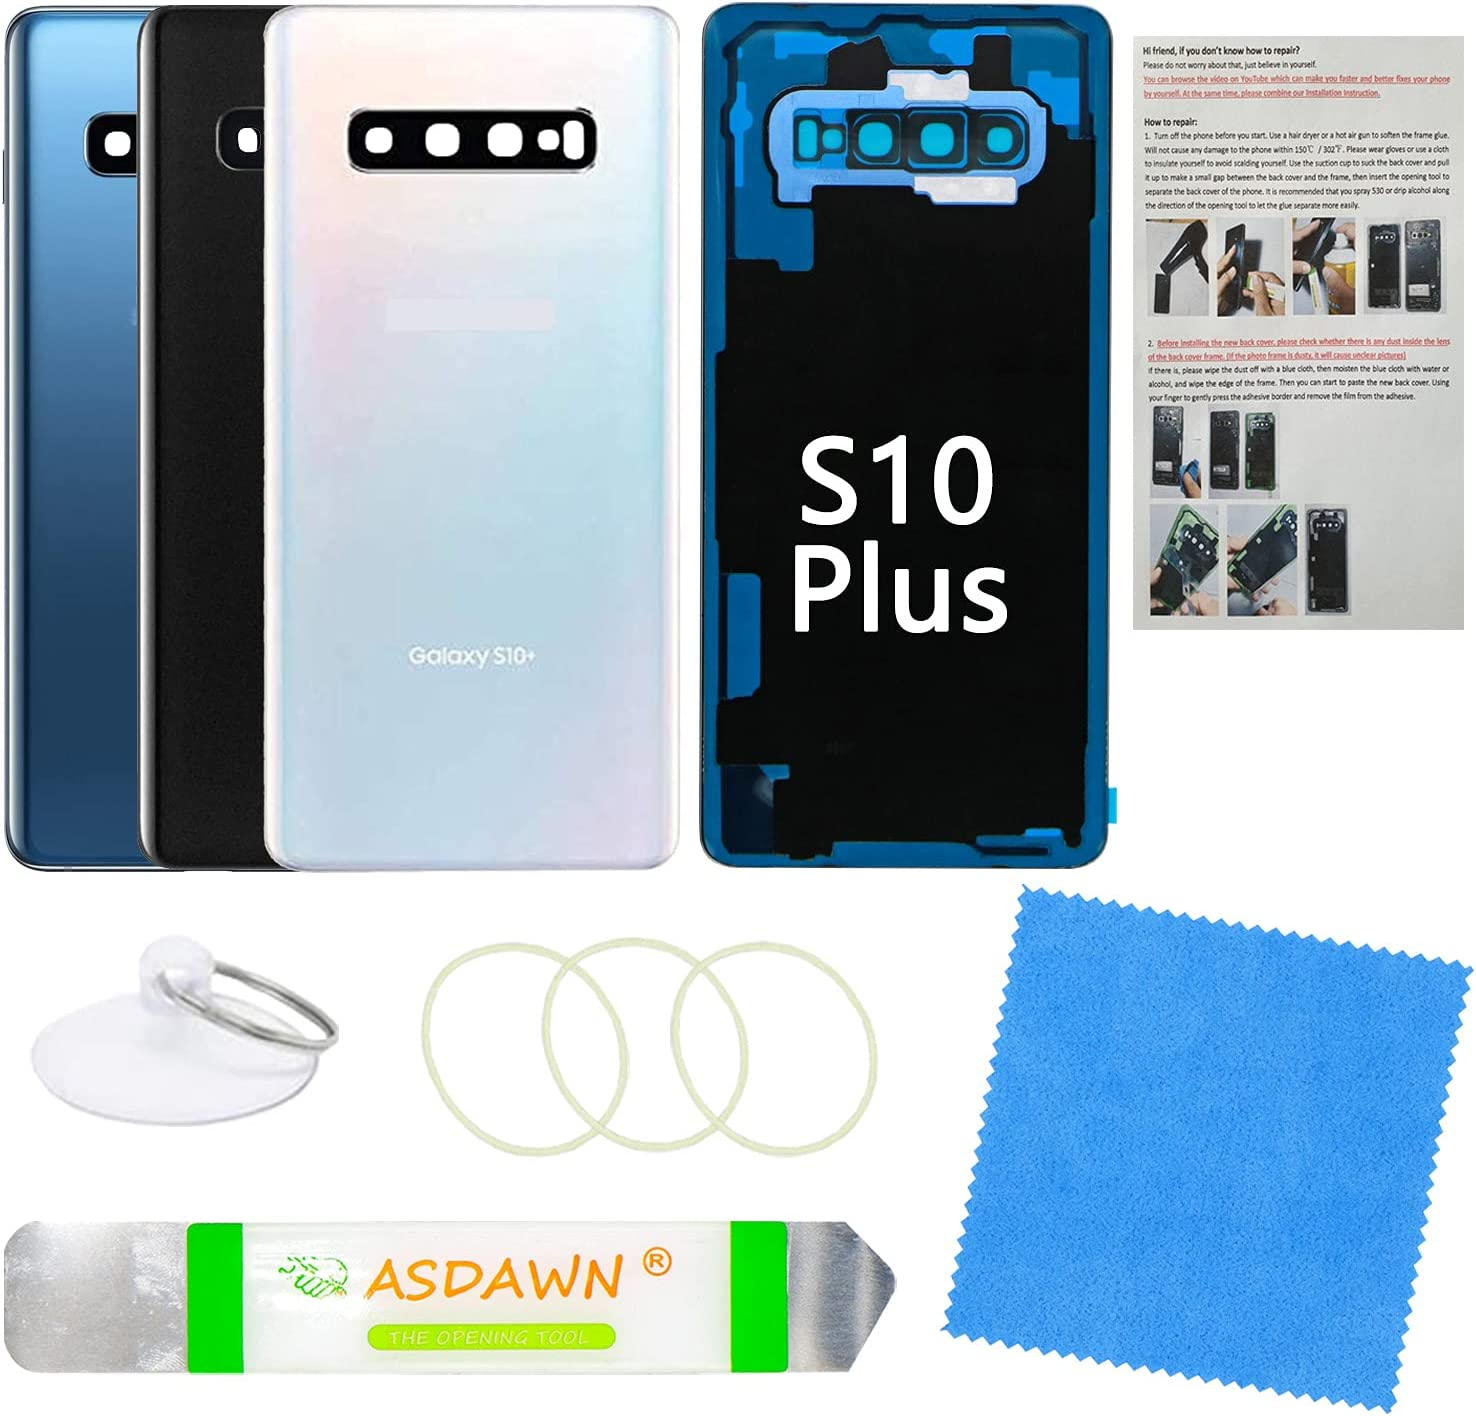 Galaxy S10+ Plus Back Glass Cover Replacement Housing Door with Pre-Installed Camera Lens +Installation Manual +All the Adhesive +Repair Tools for Samsung Galaxy S10+ SM-G975 All Carriers(Prism White)